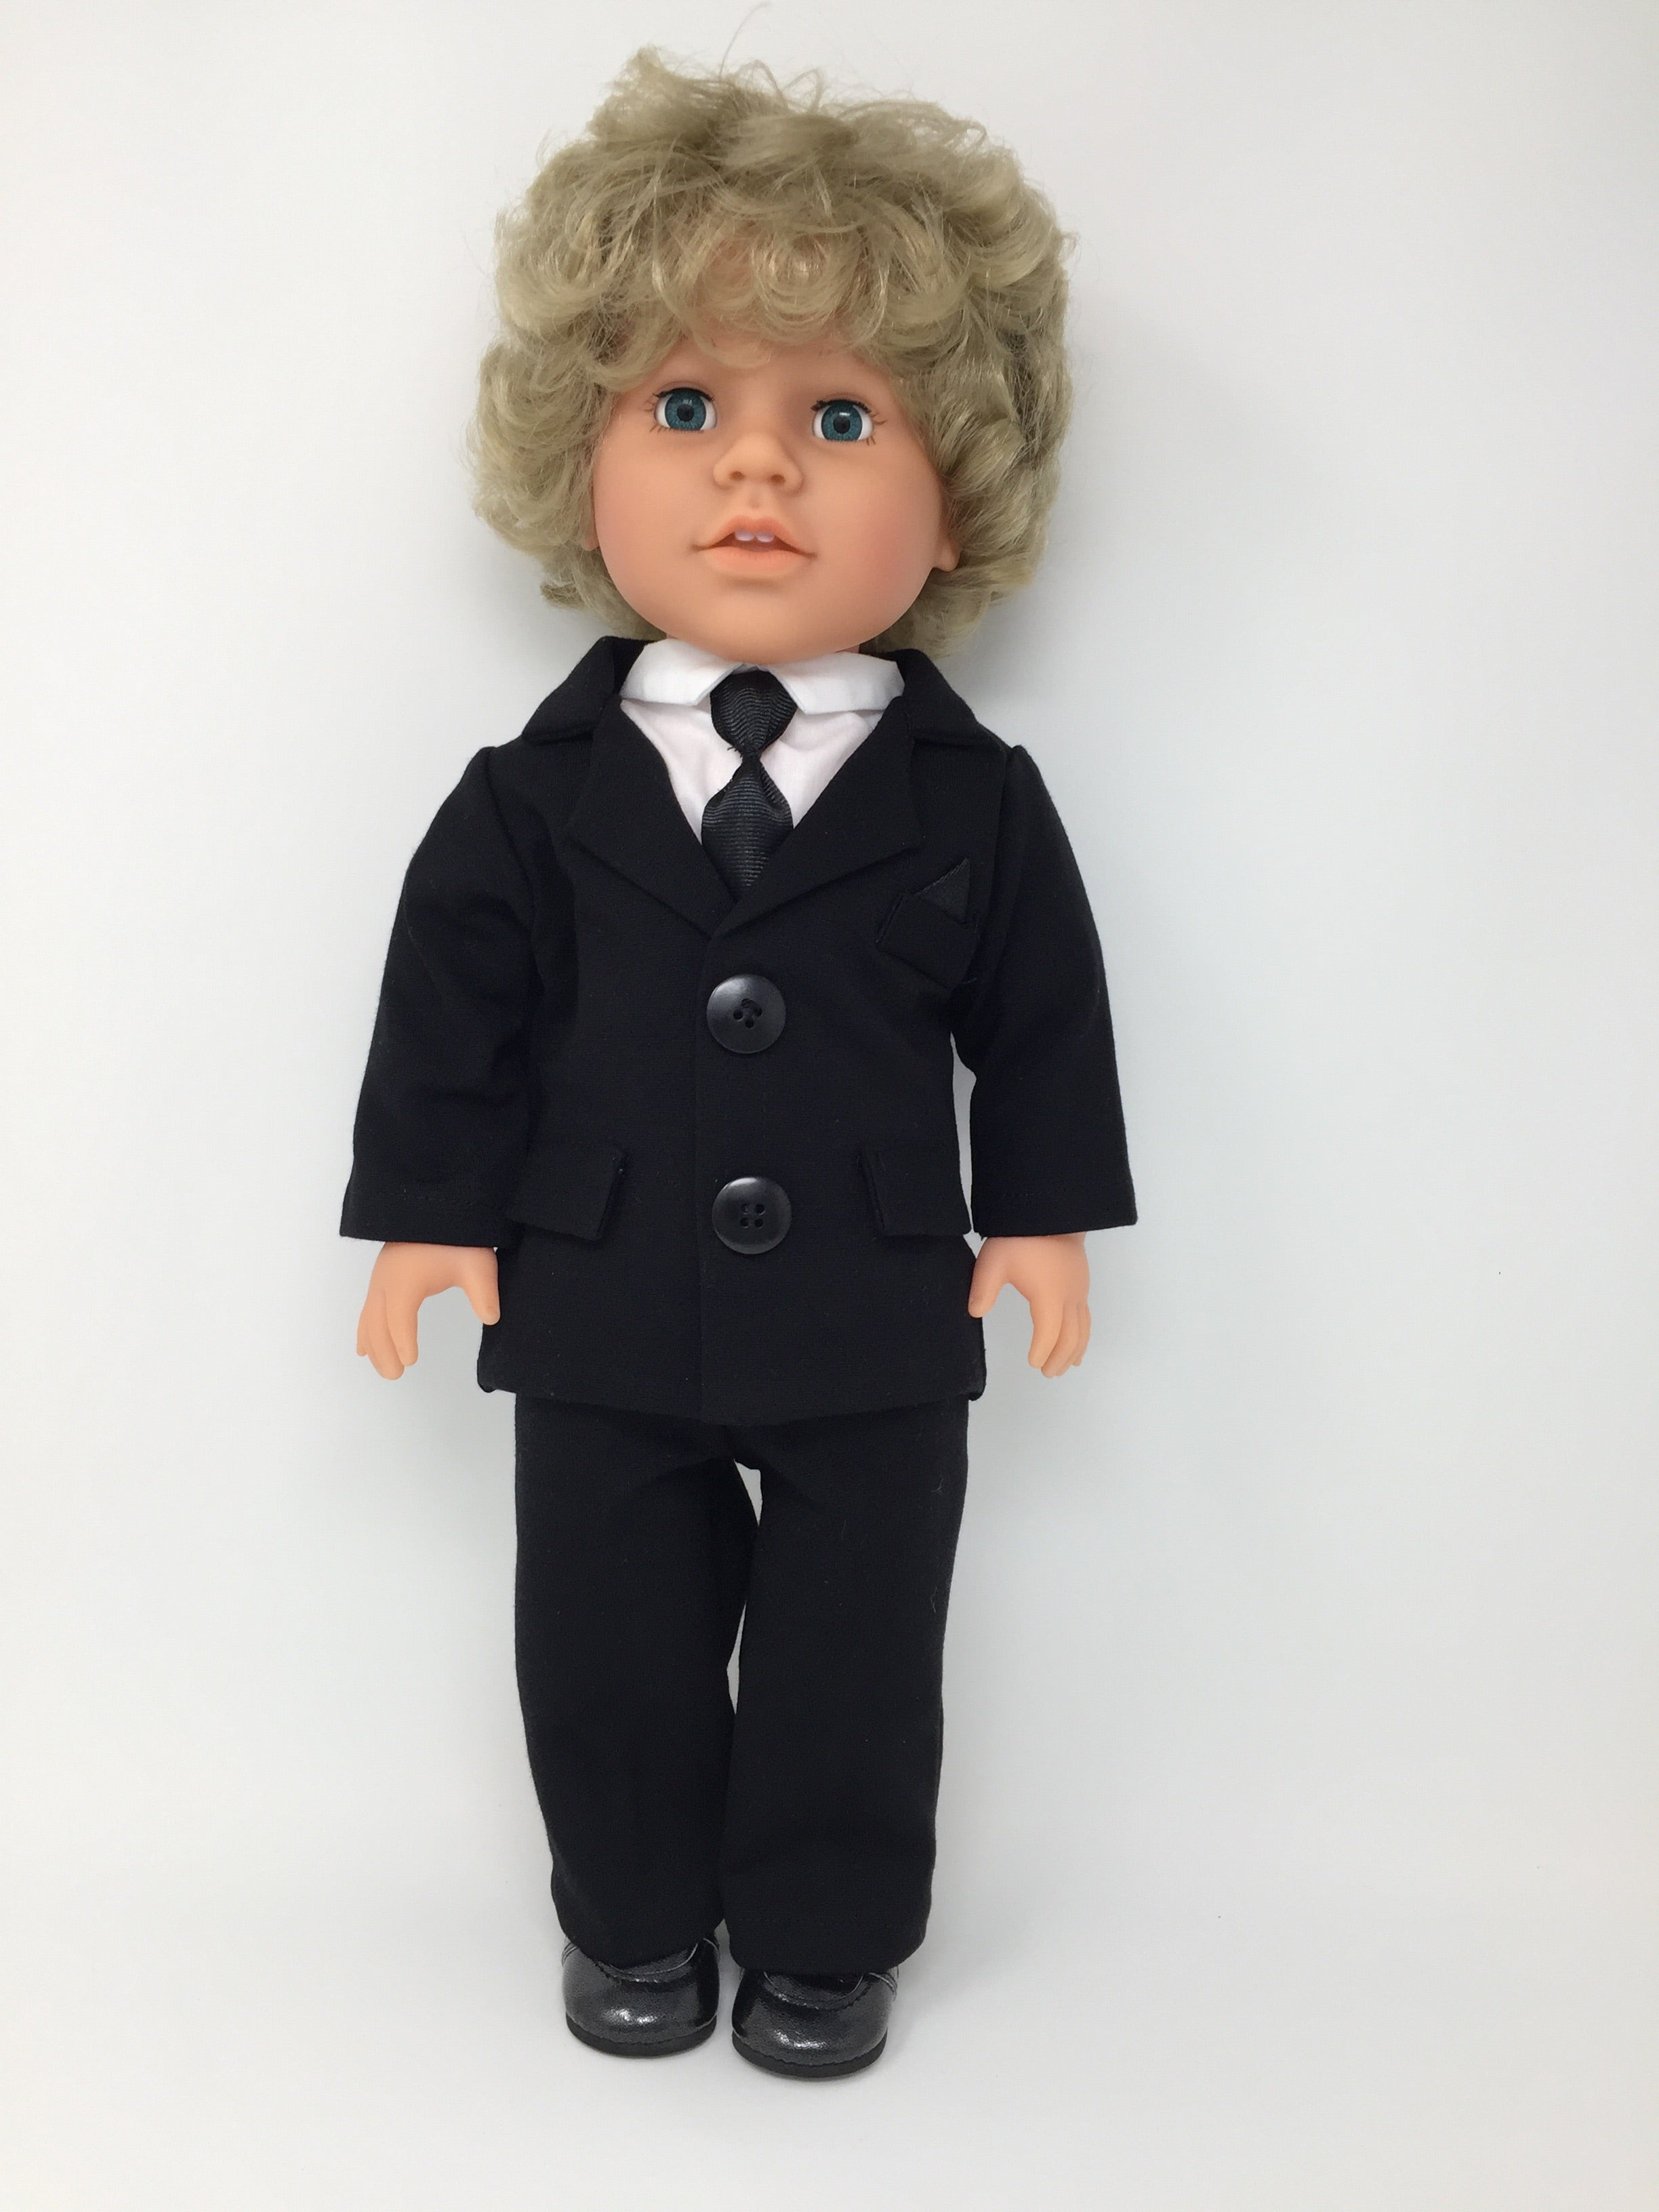 18 Inch Boy Doll Clothes Dress Up Suit 2 Choices Dolls Sold